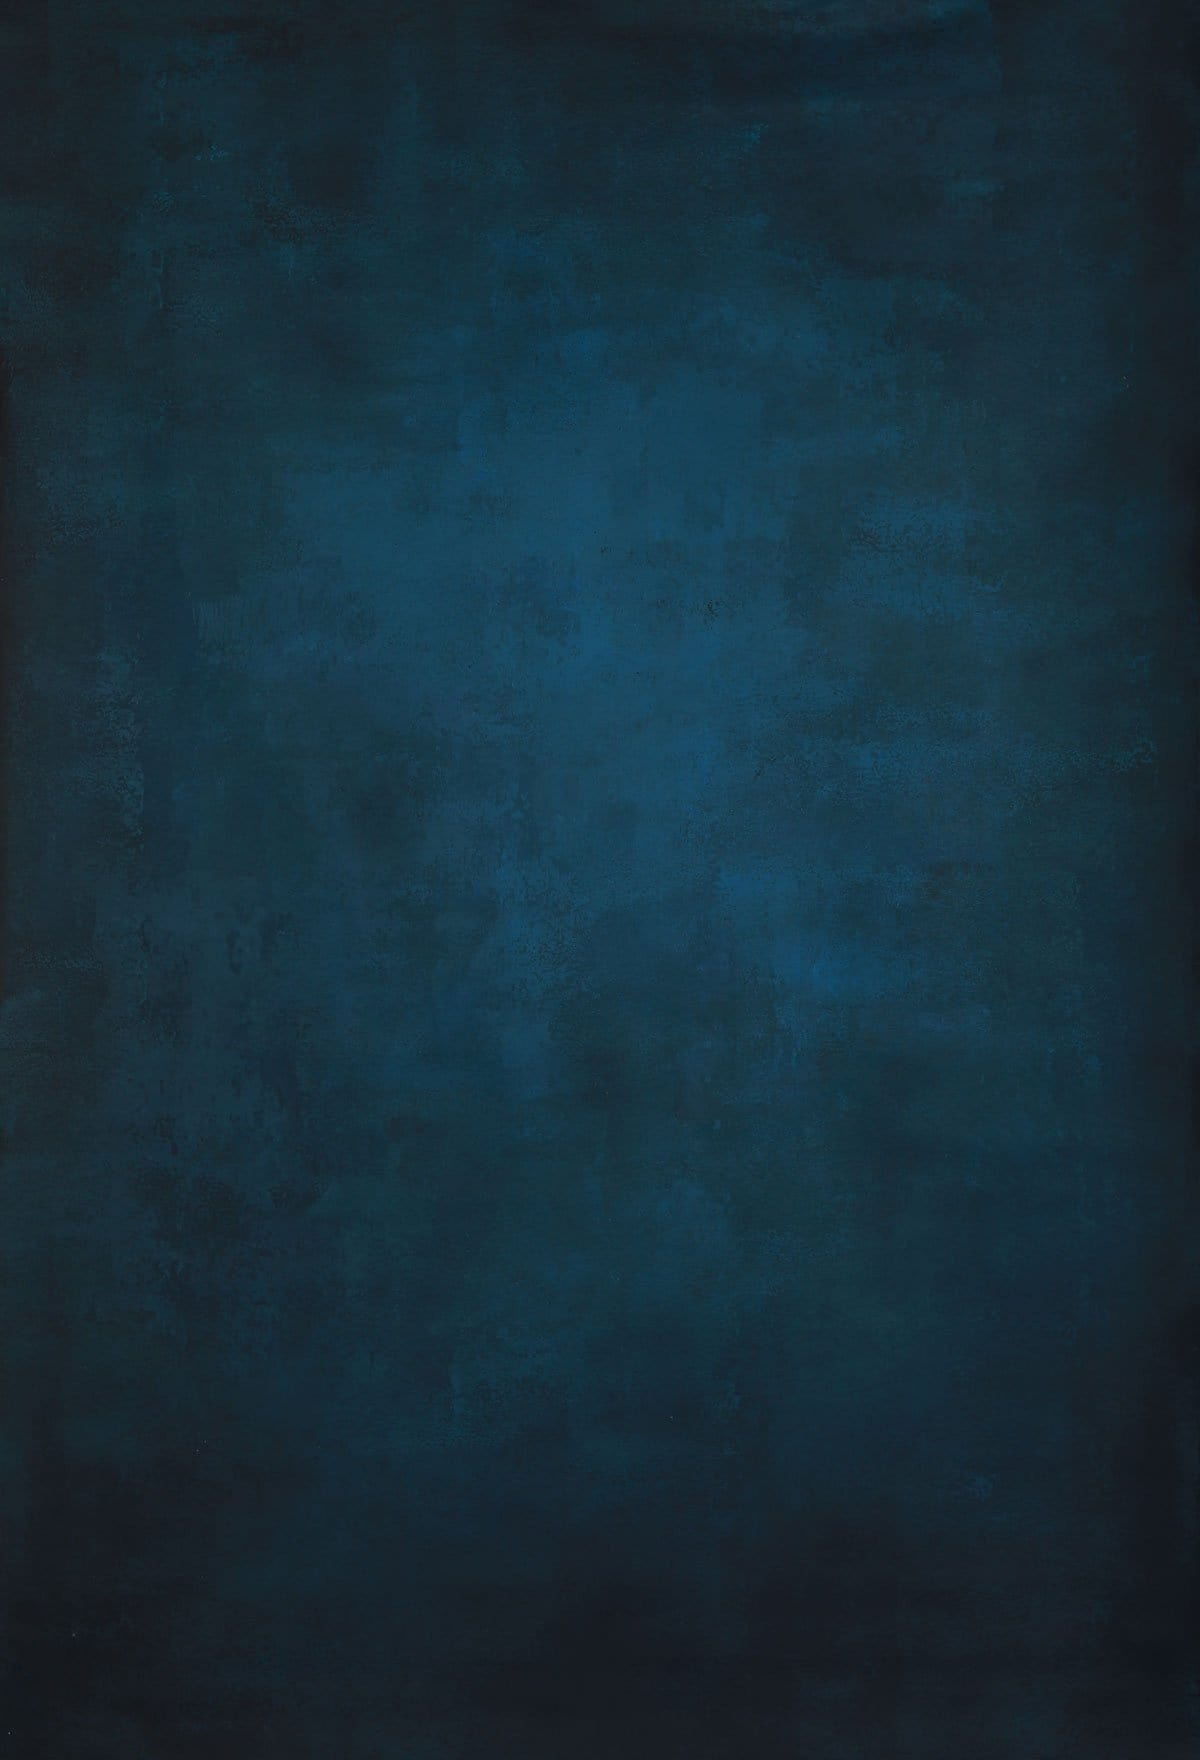 Load image into Gallery viewer, Katebackdrop£ºKate Dark Blue Abstract Backdrop for Photography